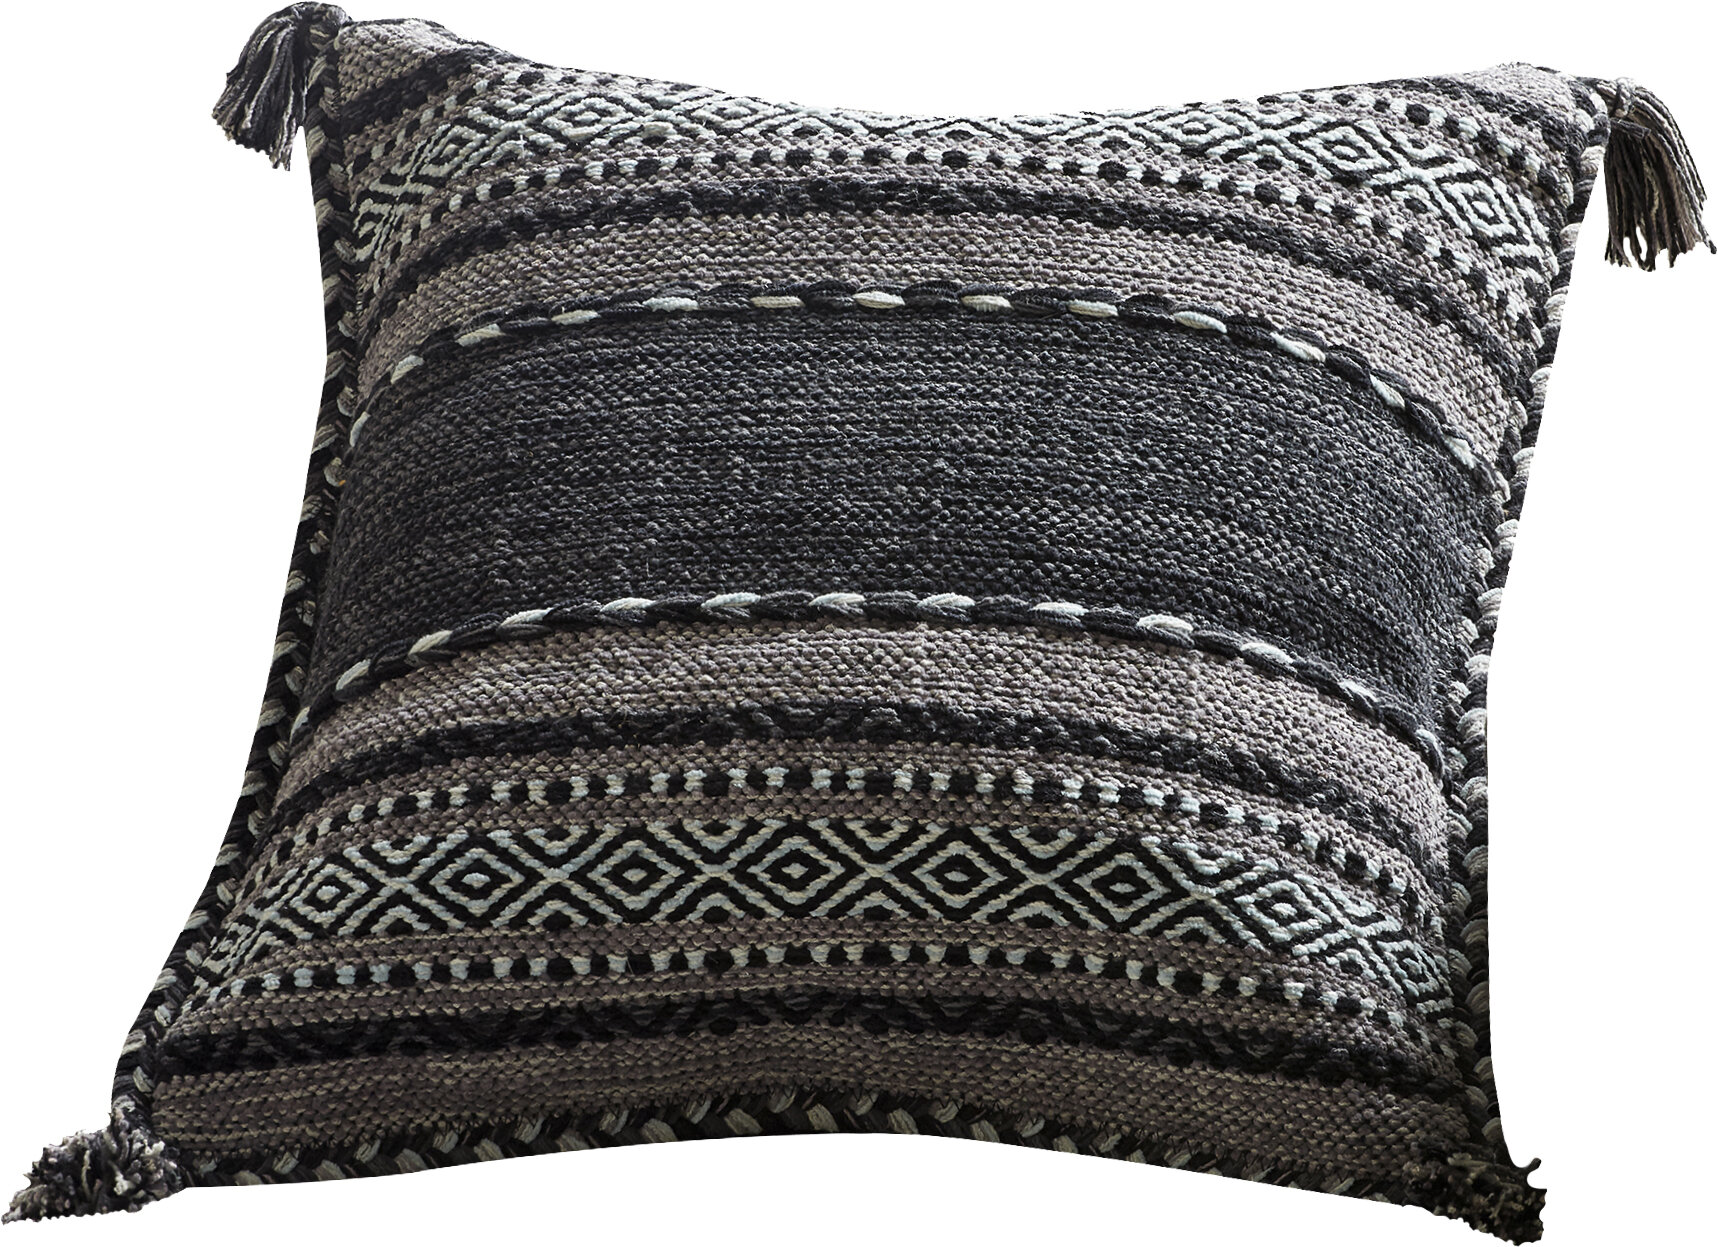 Black White Throw Pillows You Ll Love In 2021 Wayfair